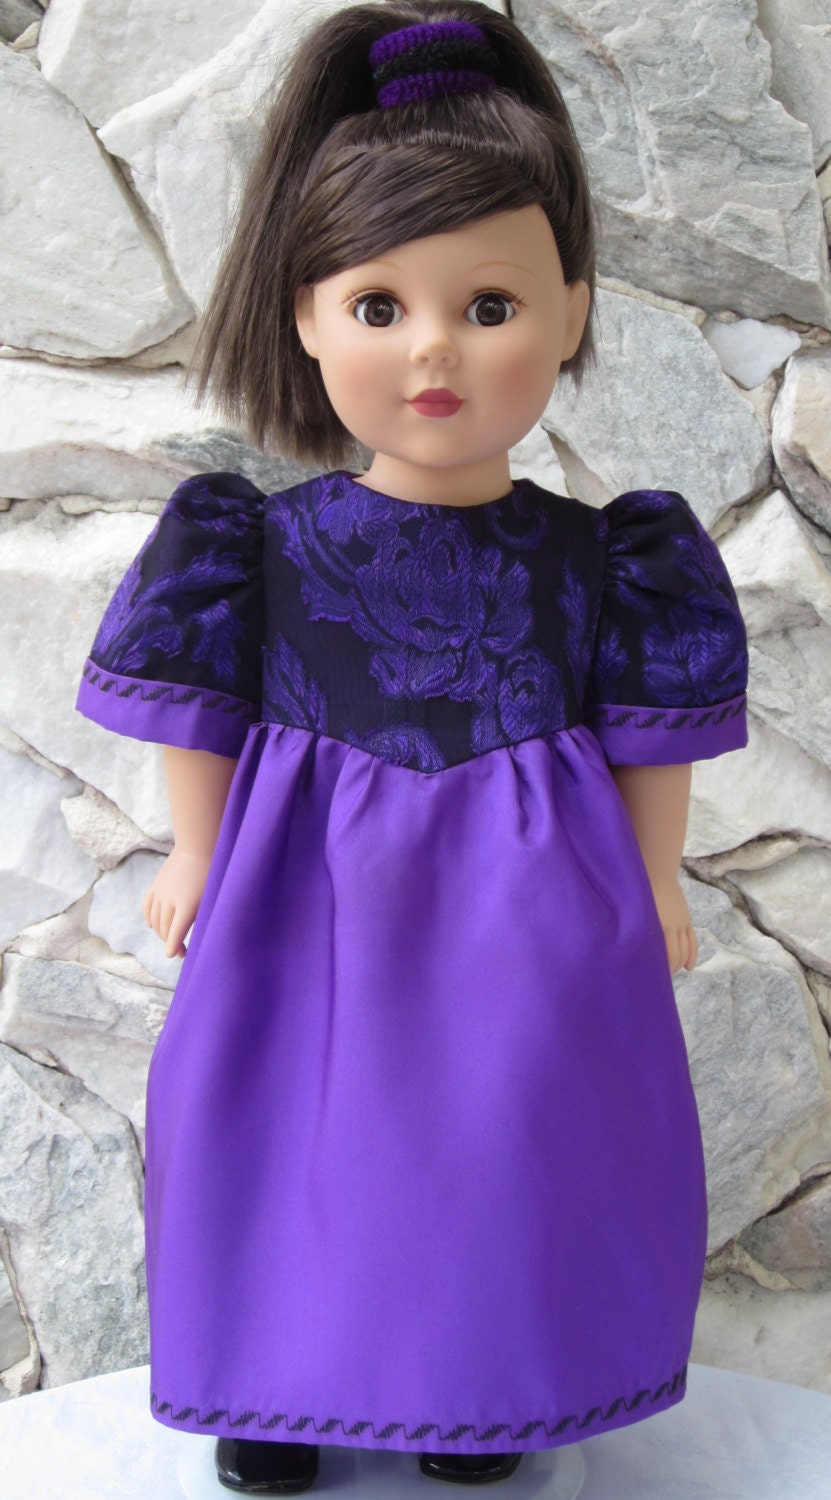 """Red-violet taffeta gown with a black & purple chiffon overlaid bodice for an 18"""" doll. - TinaDollDesigns"""